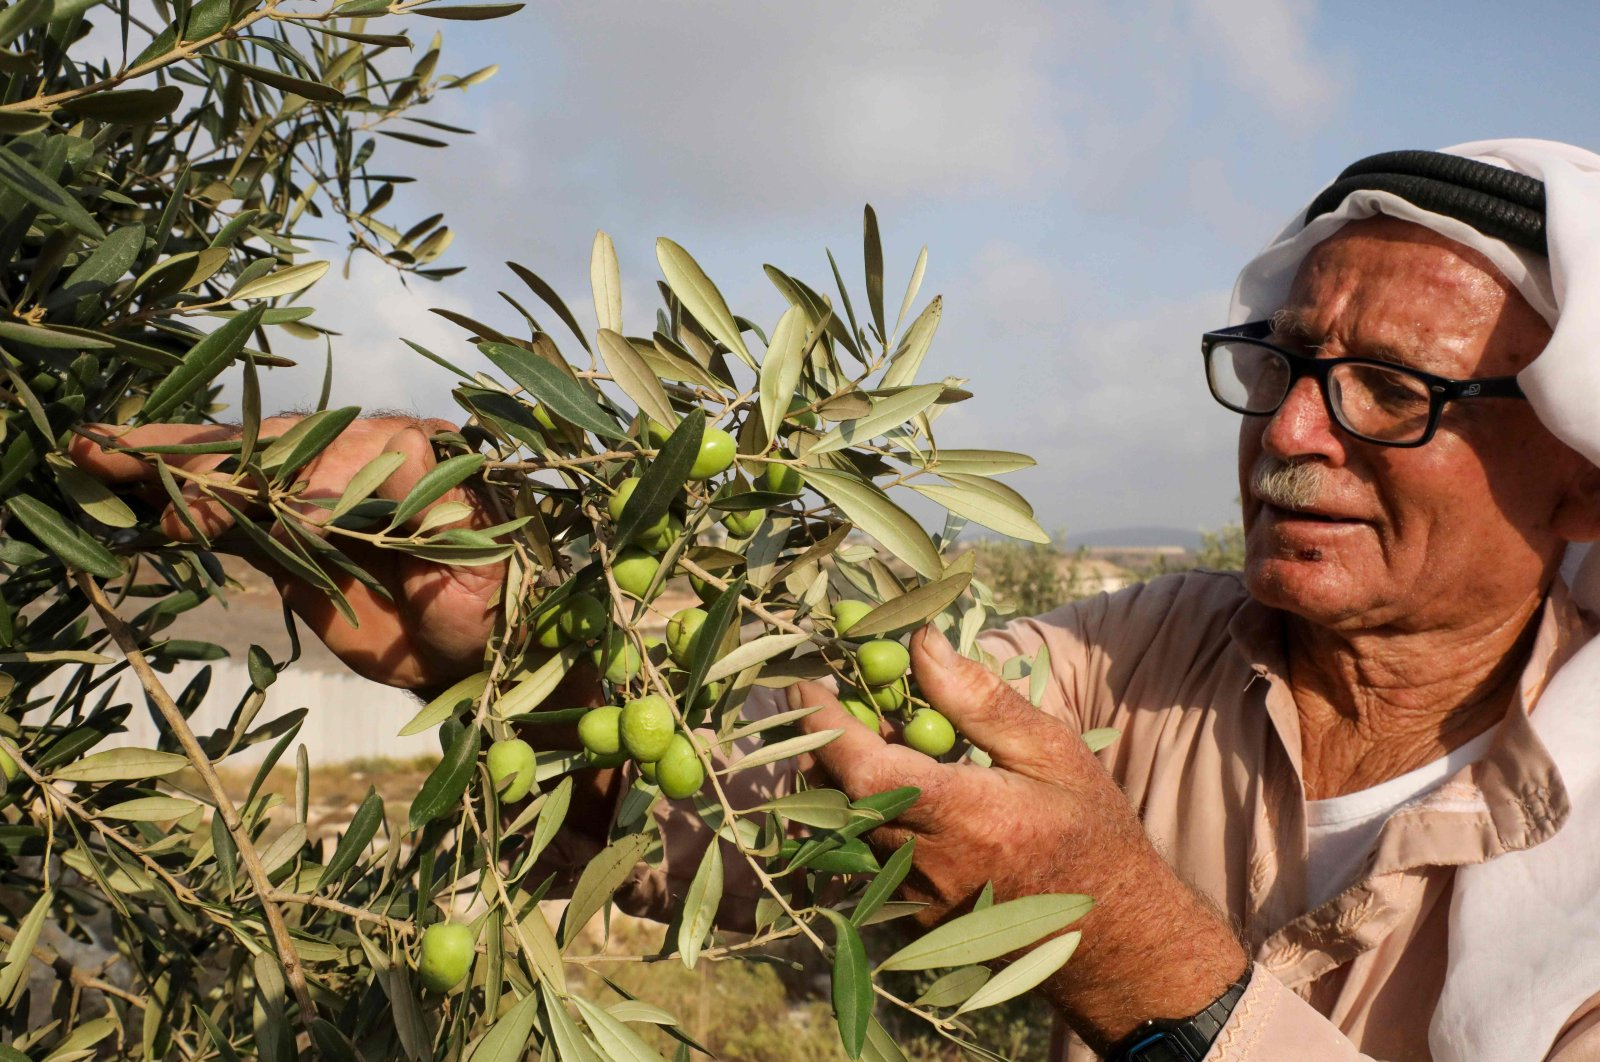 Palestinian farmer Abdel Hamid Sweity harvests olives from his trees in the West Bank village of Beit Awwa southwest of Hebron, near the Israeli separation barrier and the settlement of Sheqef (background), on Oct. 10, 2020. (AFP Photo)